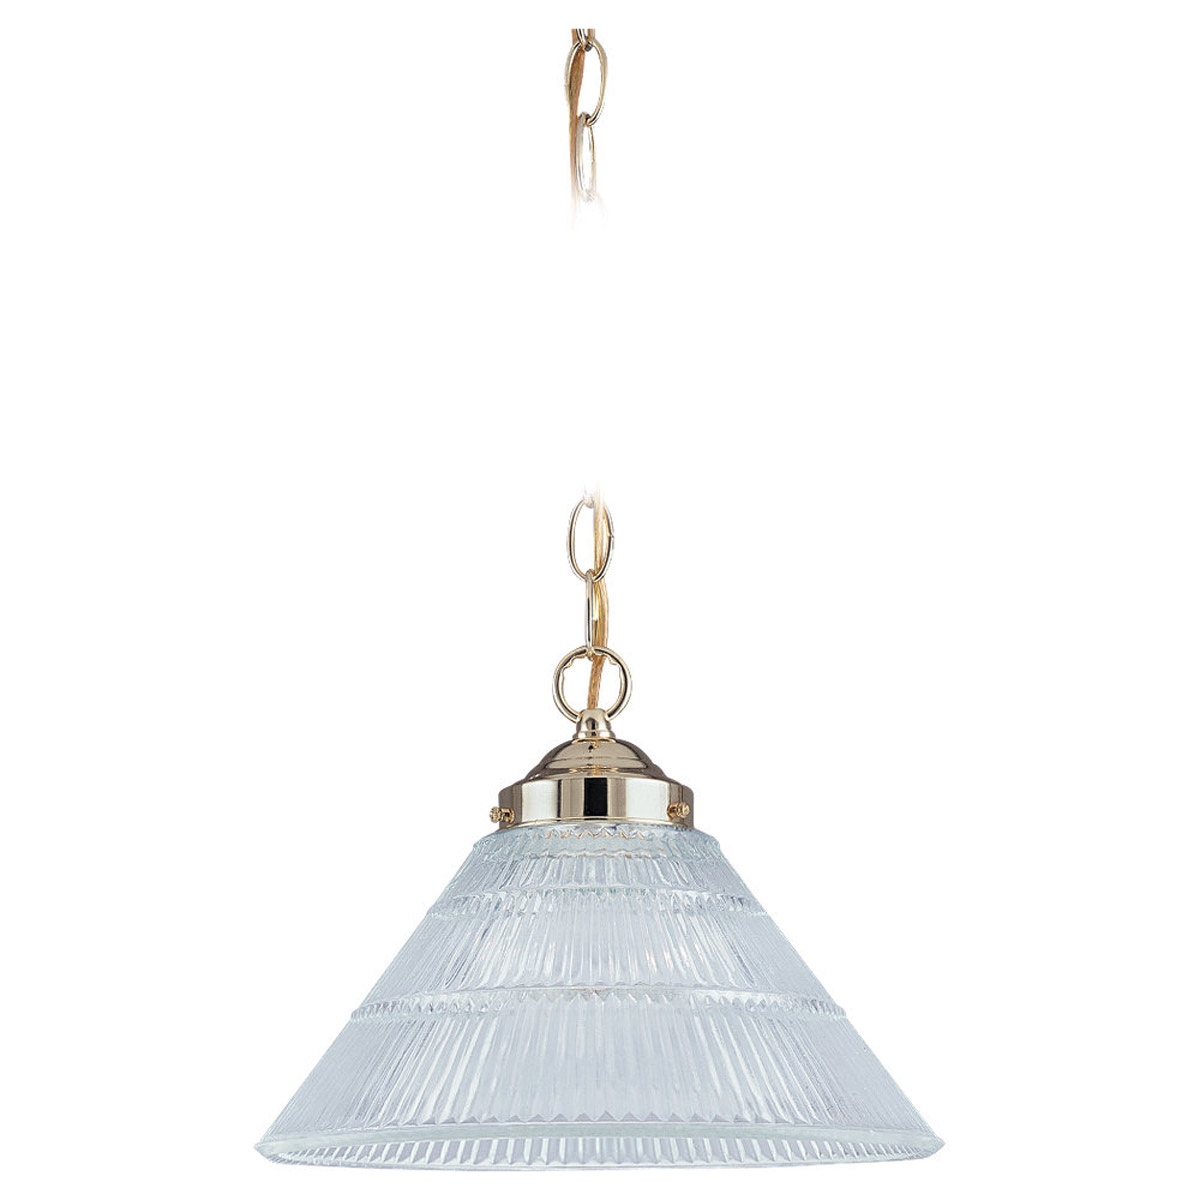 Sea Gull Lighting Ribbed Glass 1 Light Pendant in Polished Brass 6671-02 photo